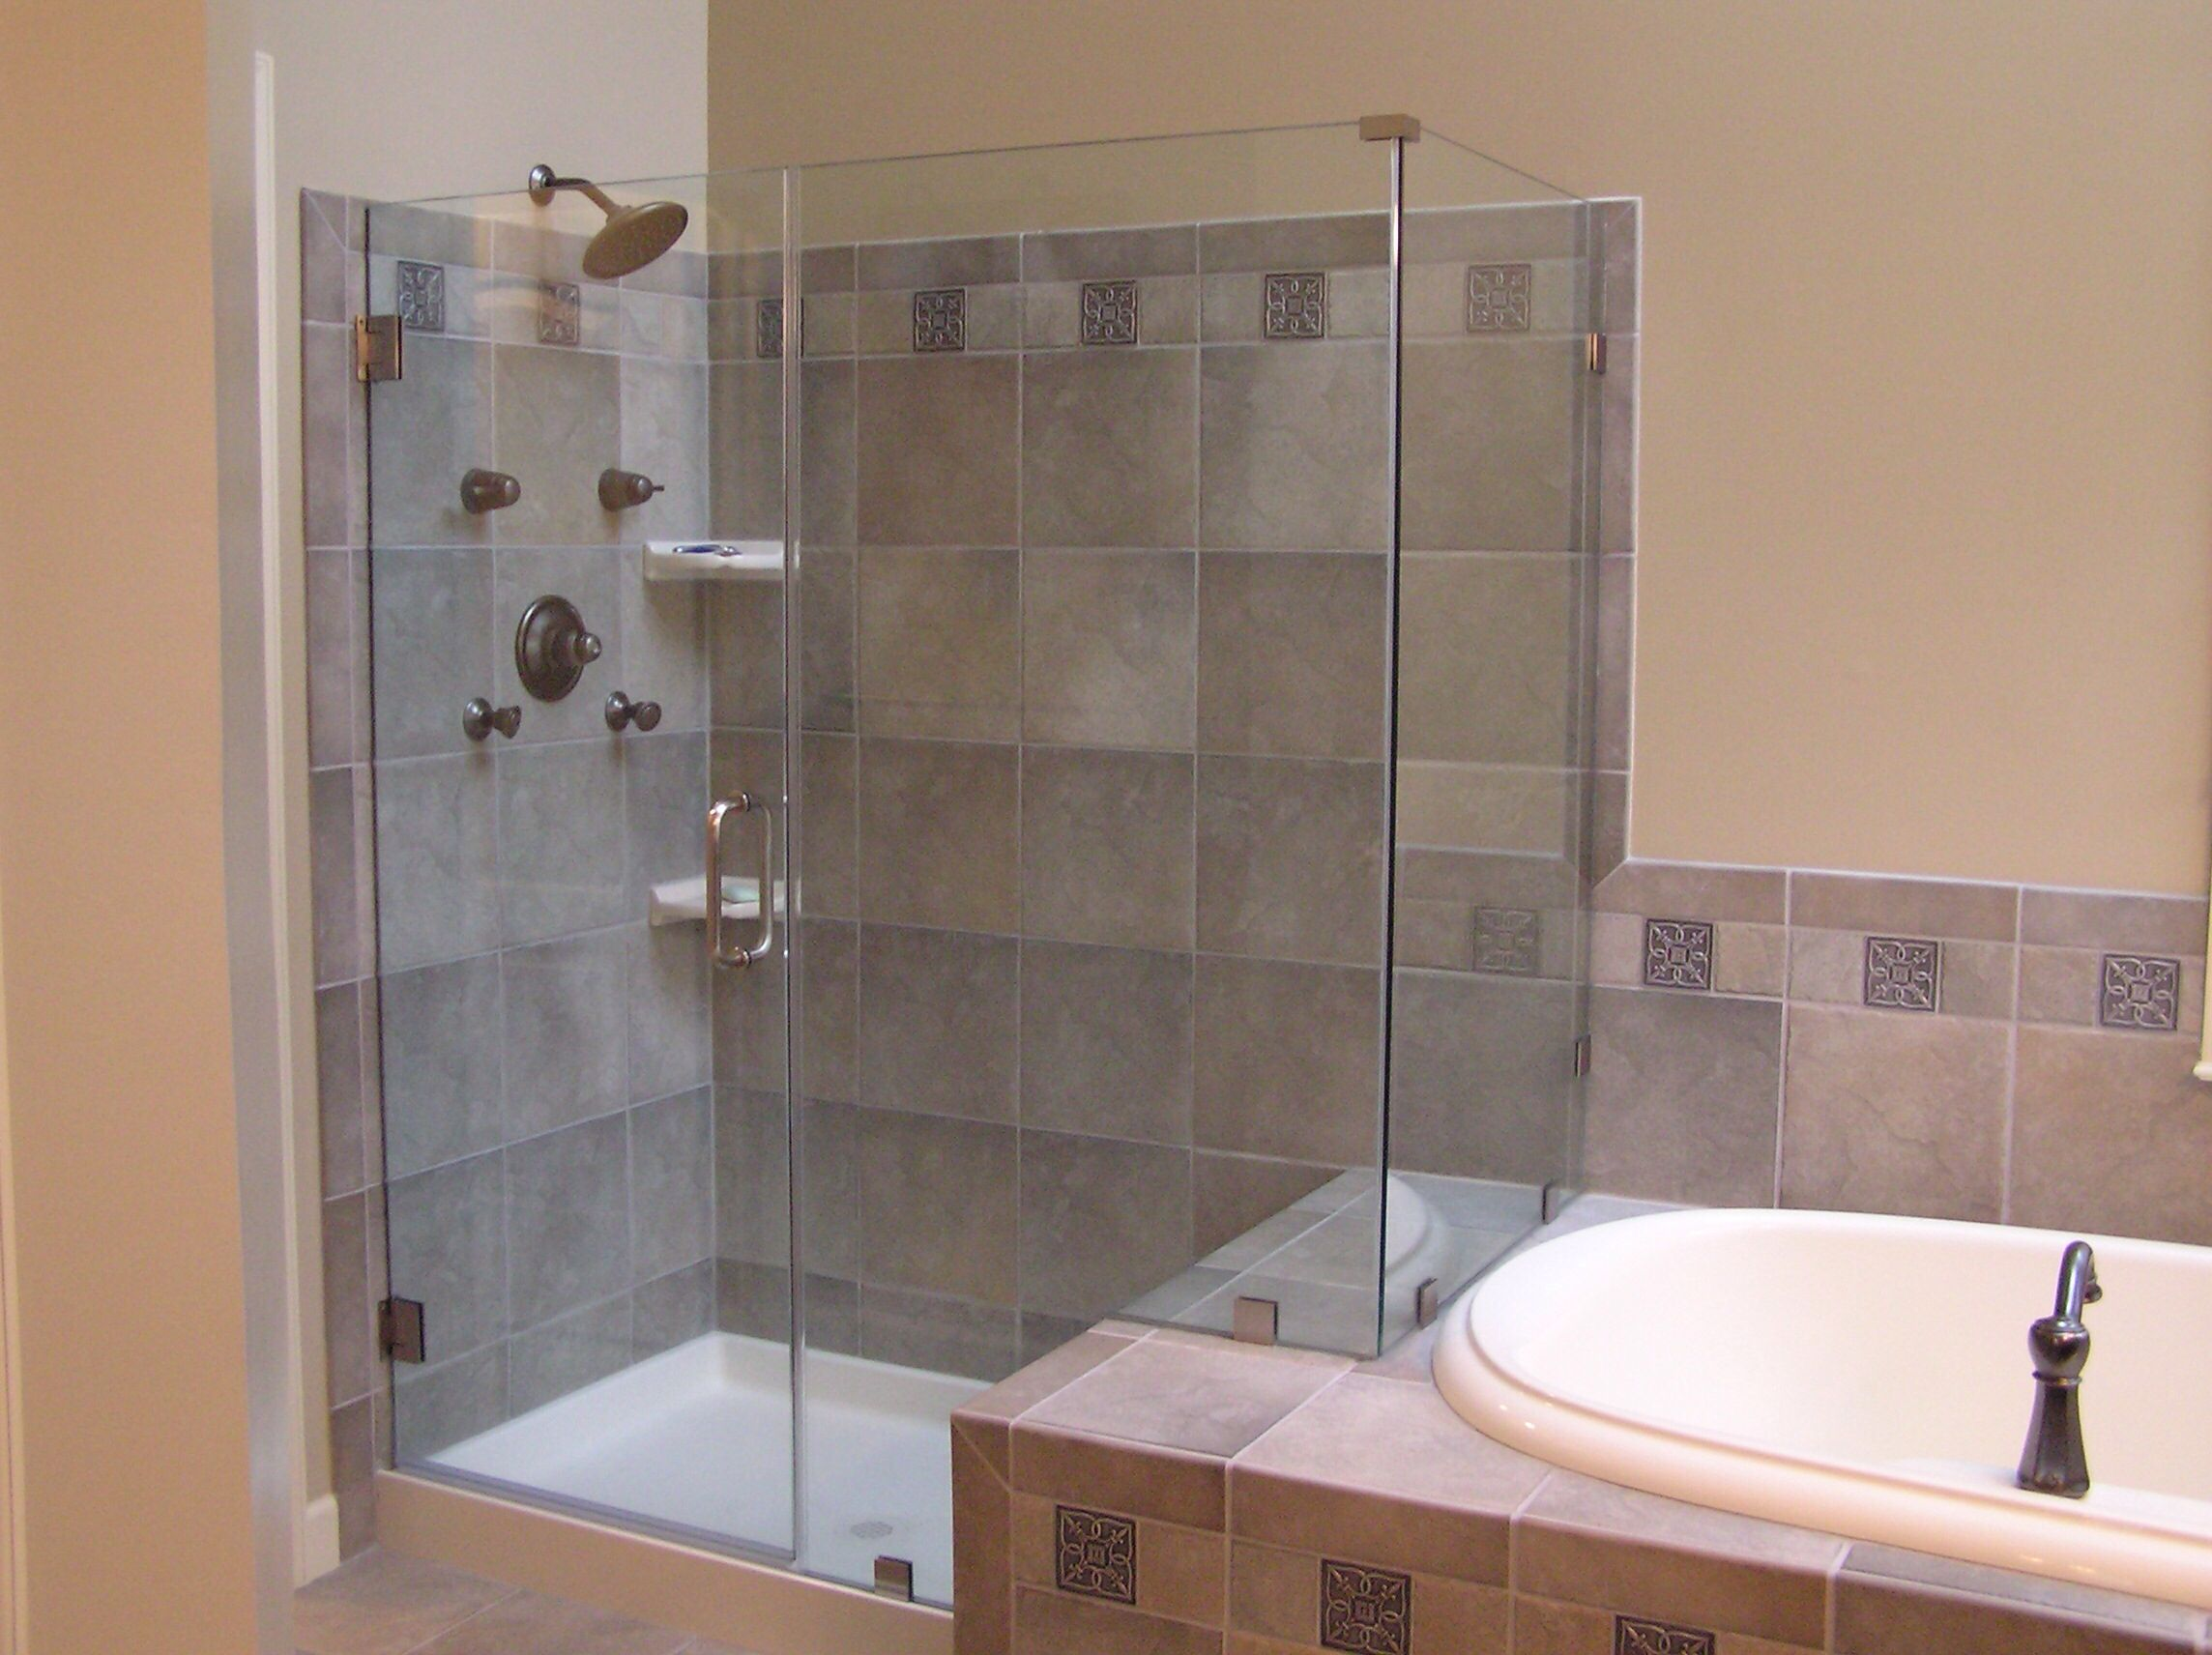 Love the idea of using the edge of the tub as the bench in the shower... Very clever use of the space...